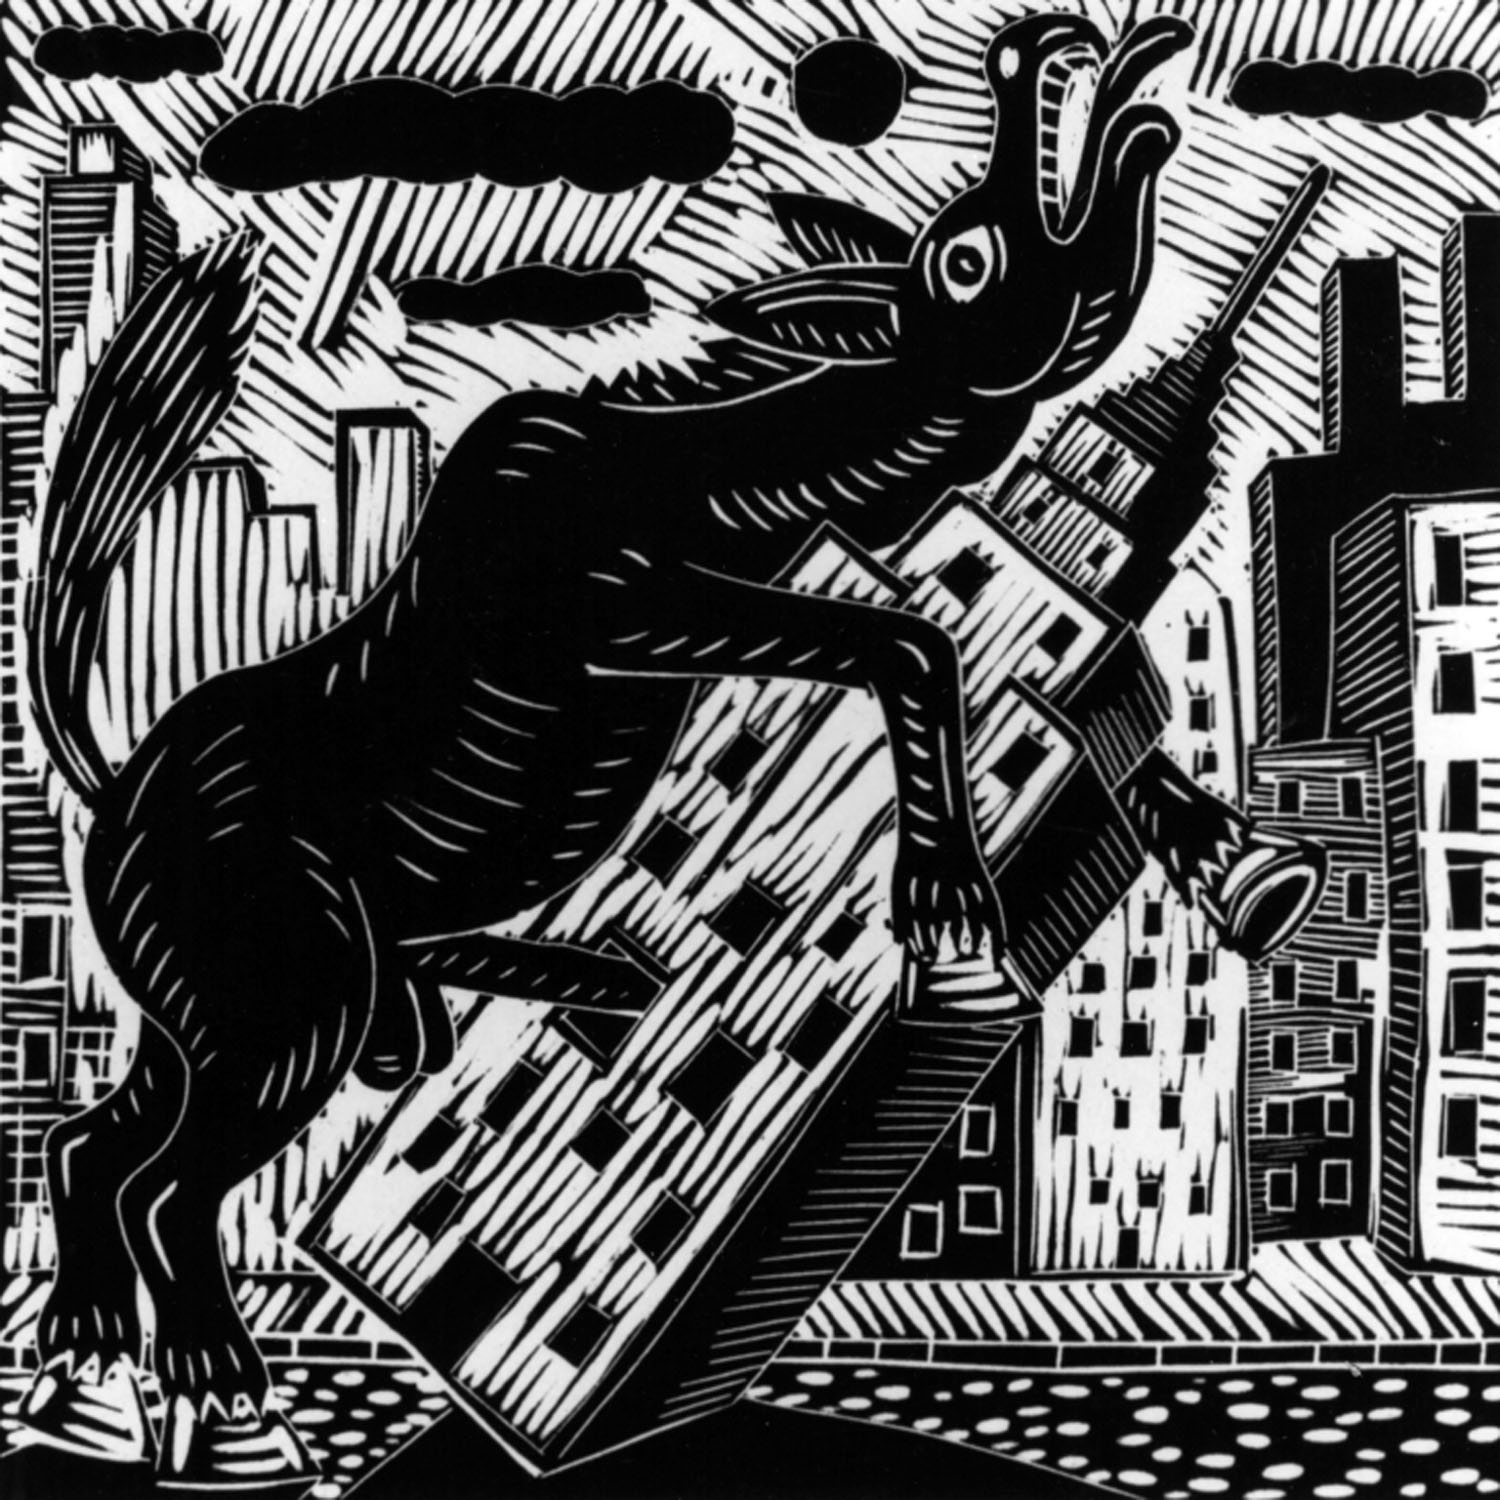 Richard Mock,  Donkey Fucks Empire State Building , linoleum cut based on his painting